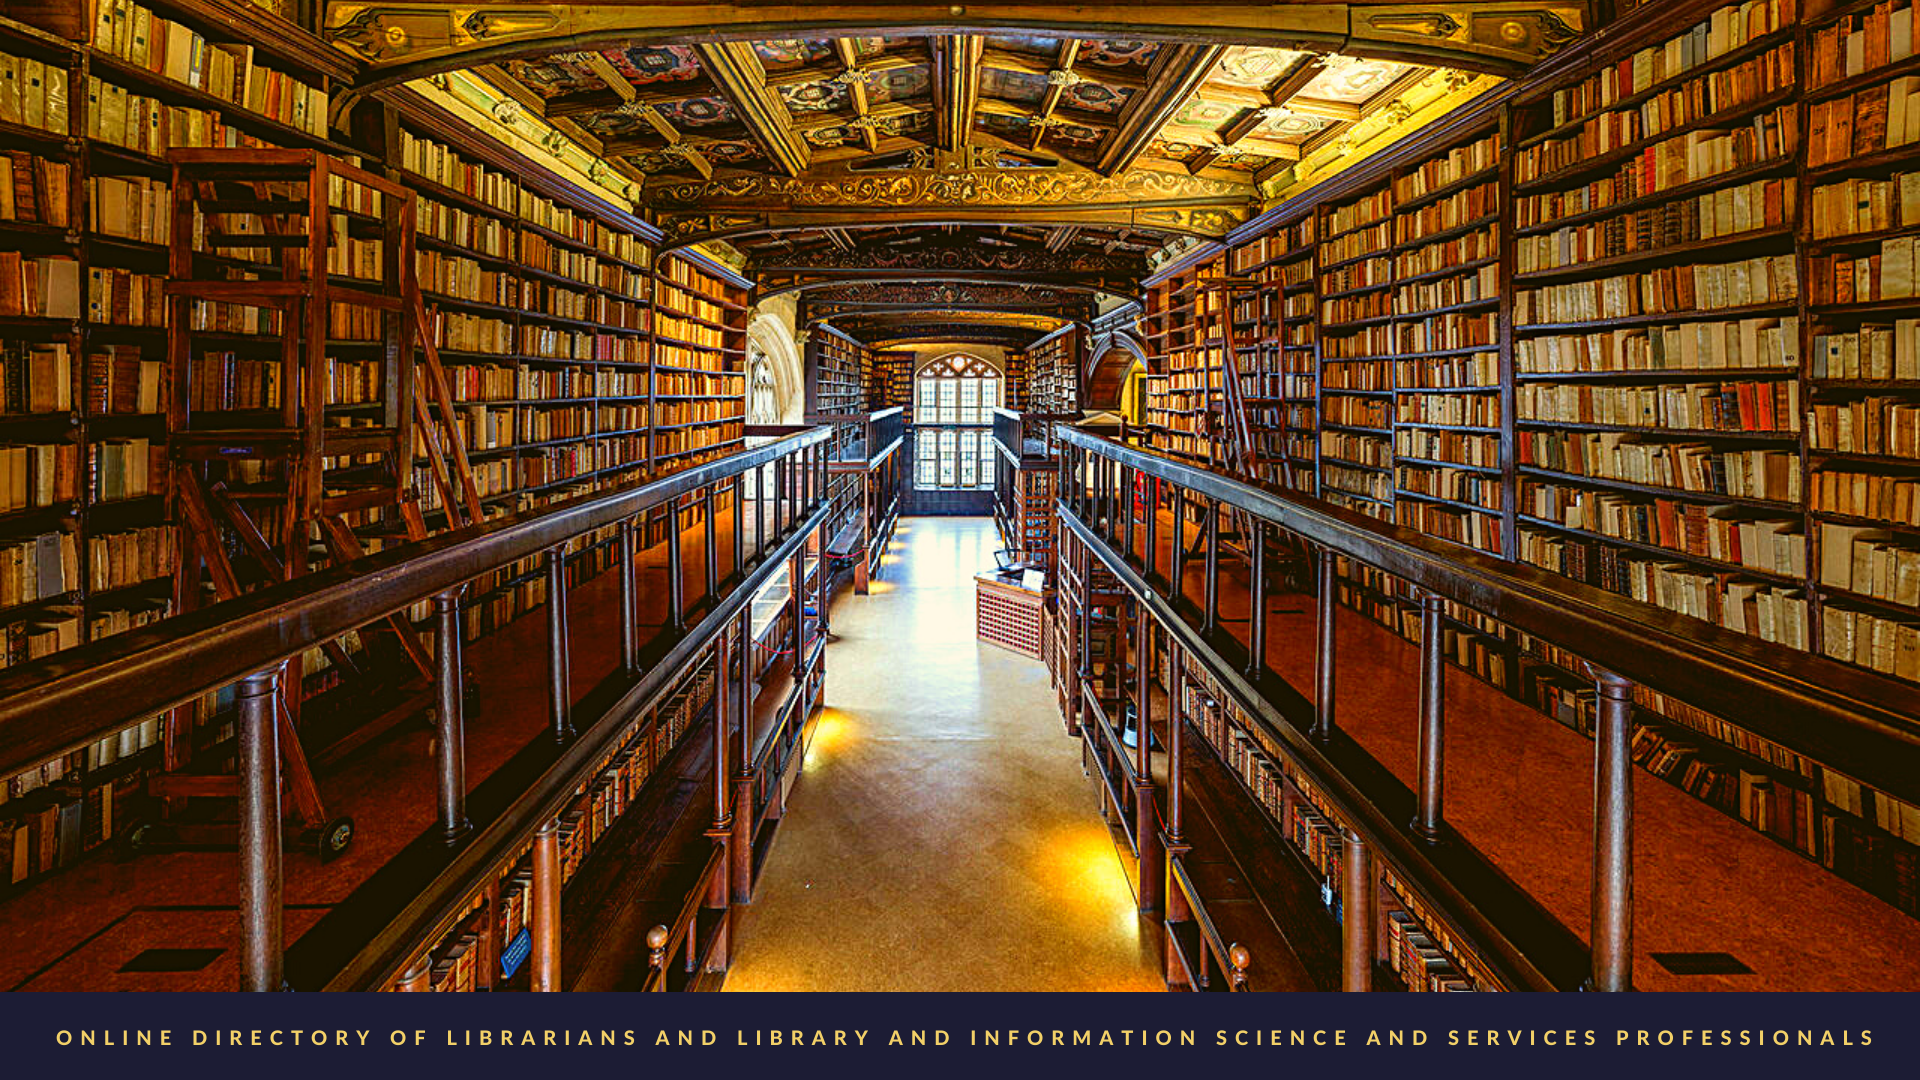 Online Directory of Librarians and Library and Information Science and Services Professionals